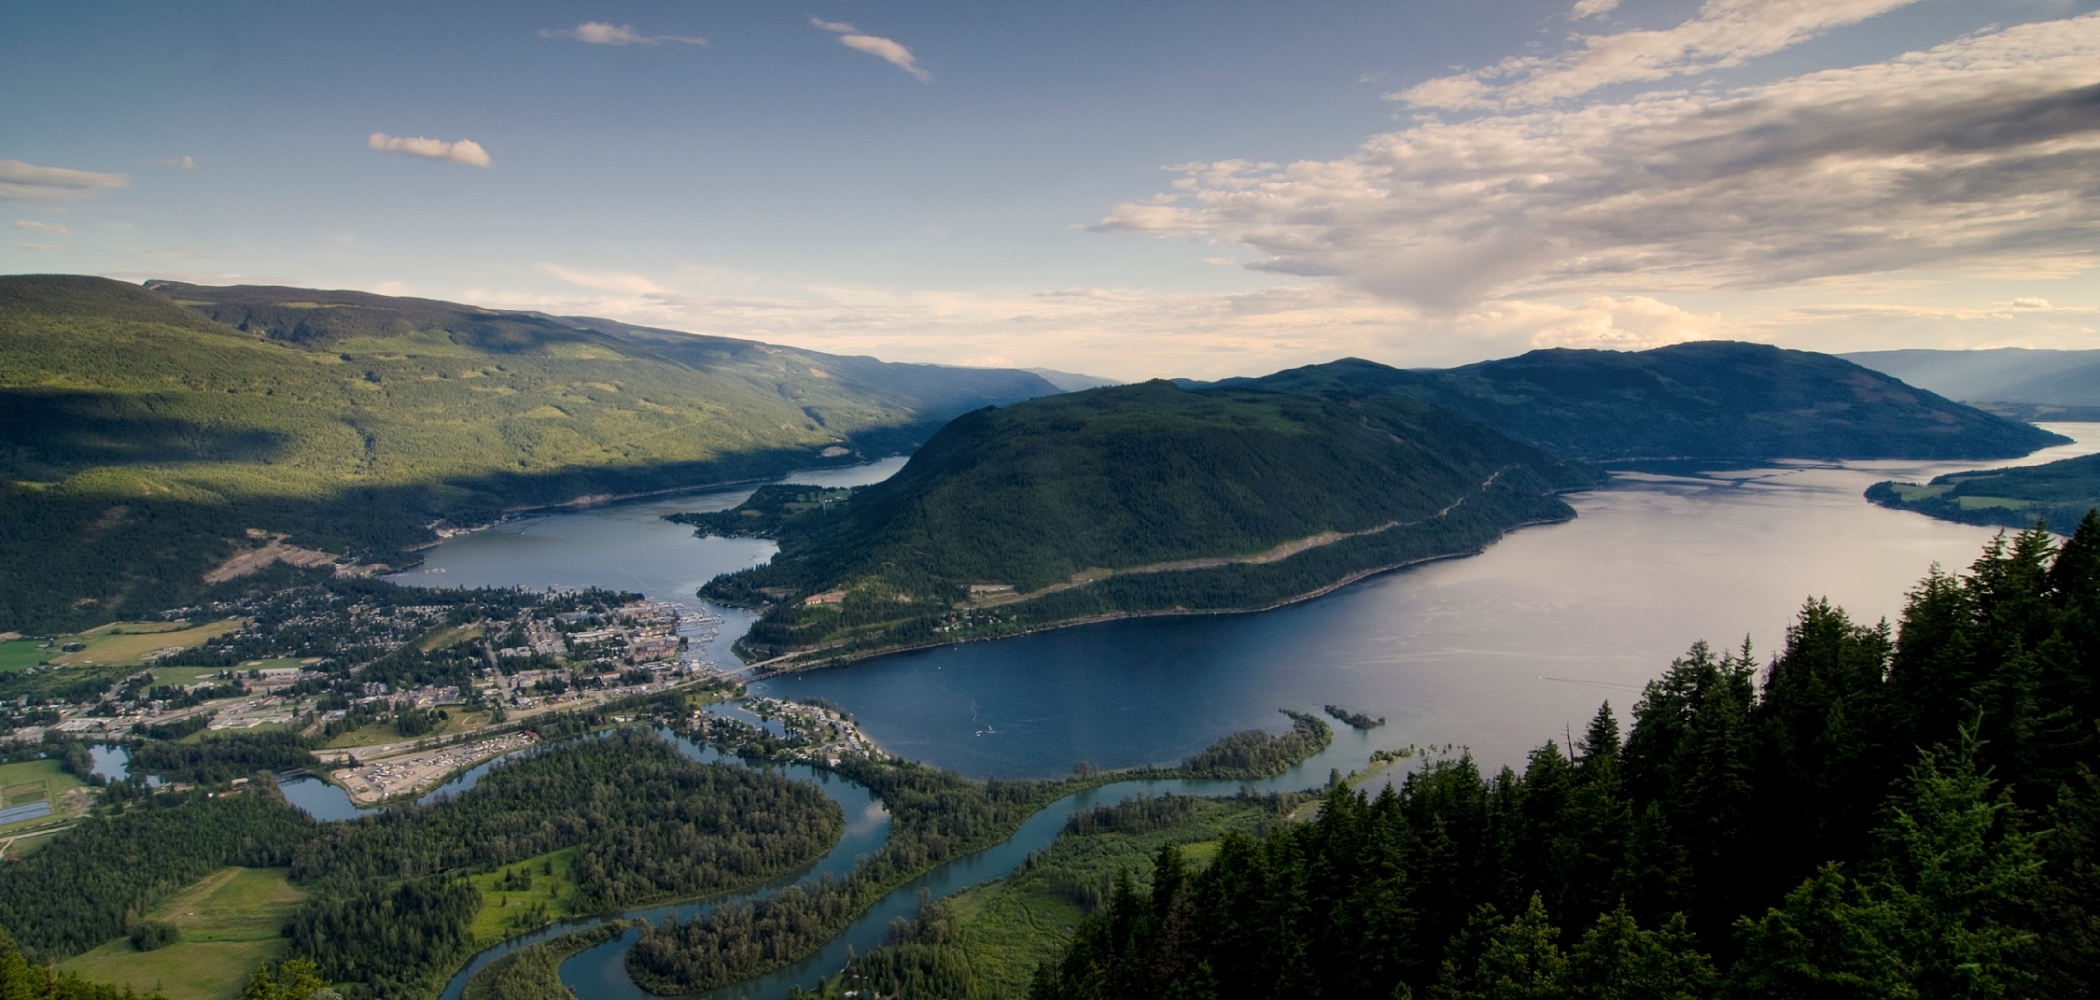 Sicamous, set along Shuswap and Mara lakes